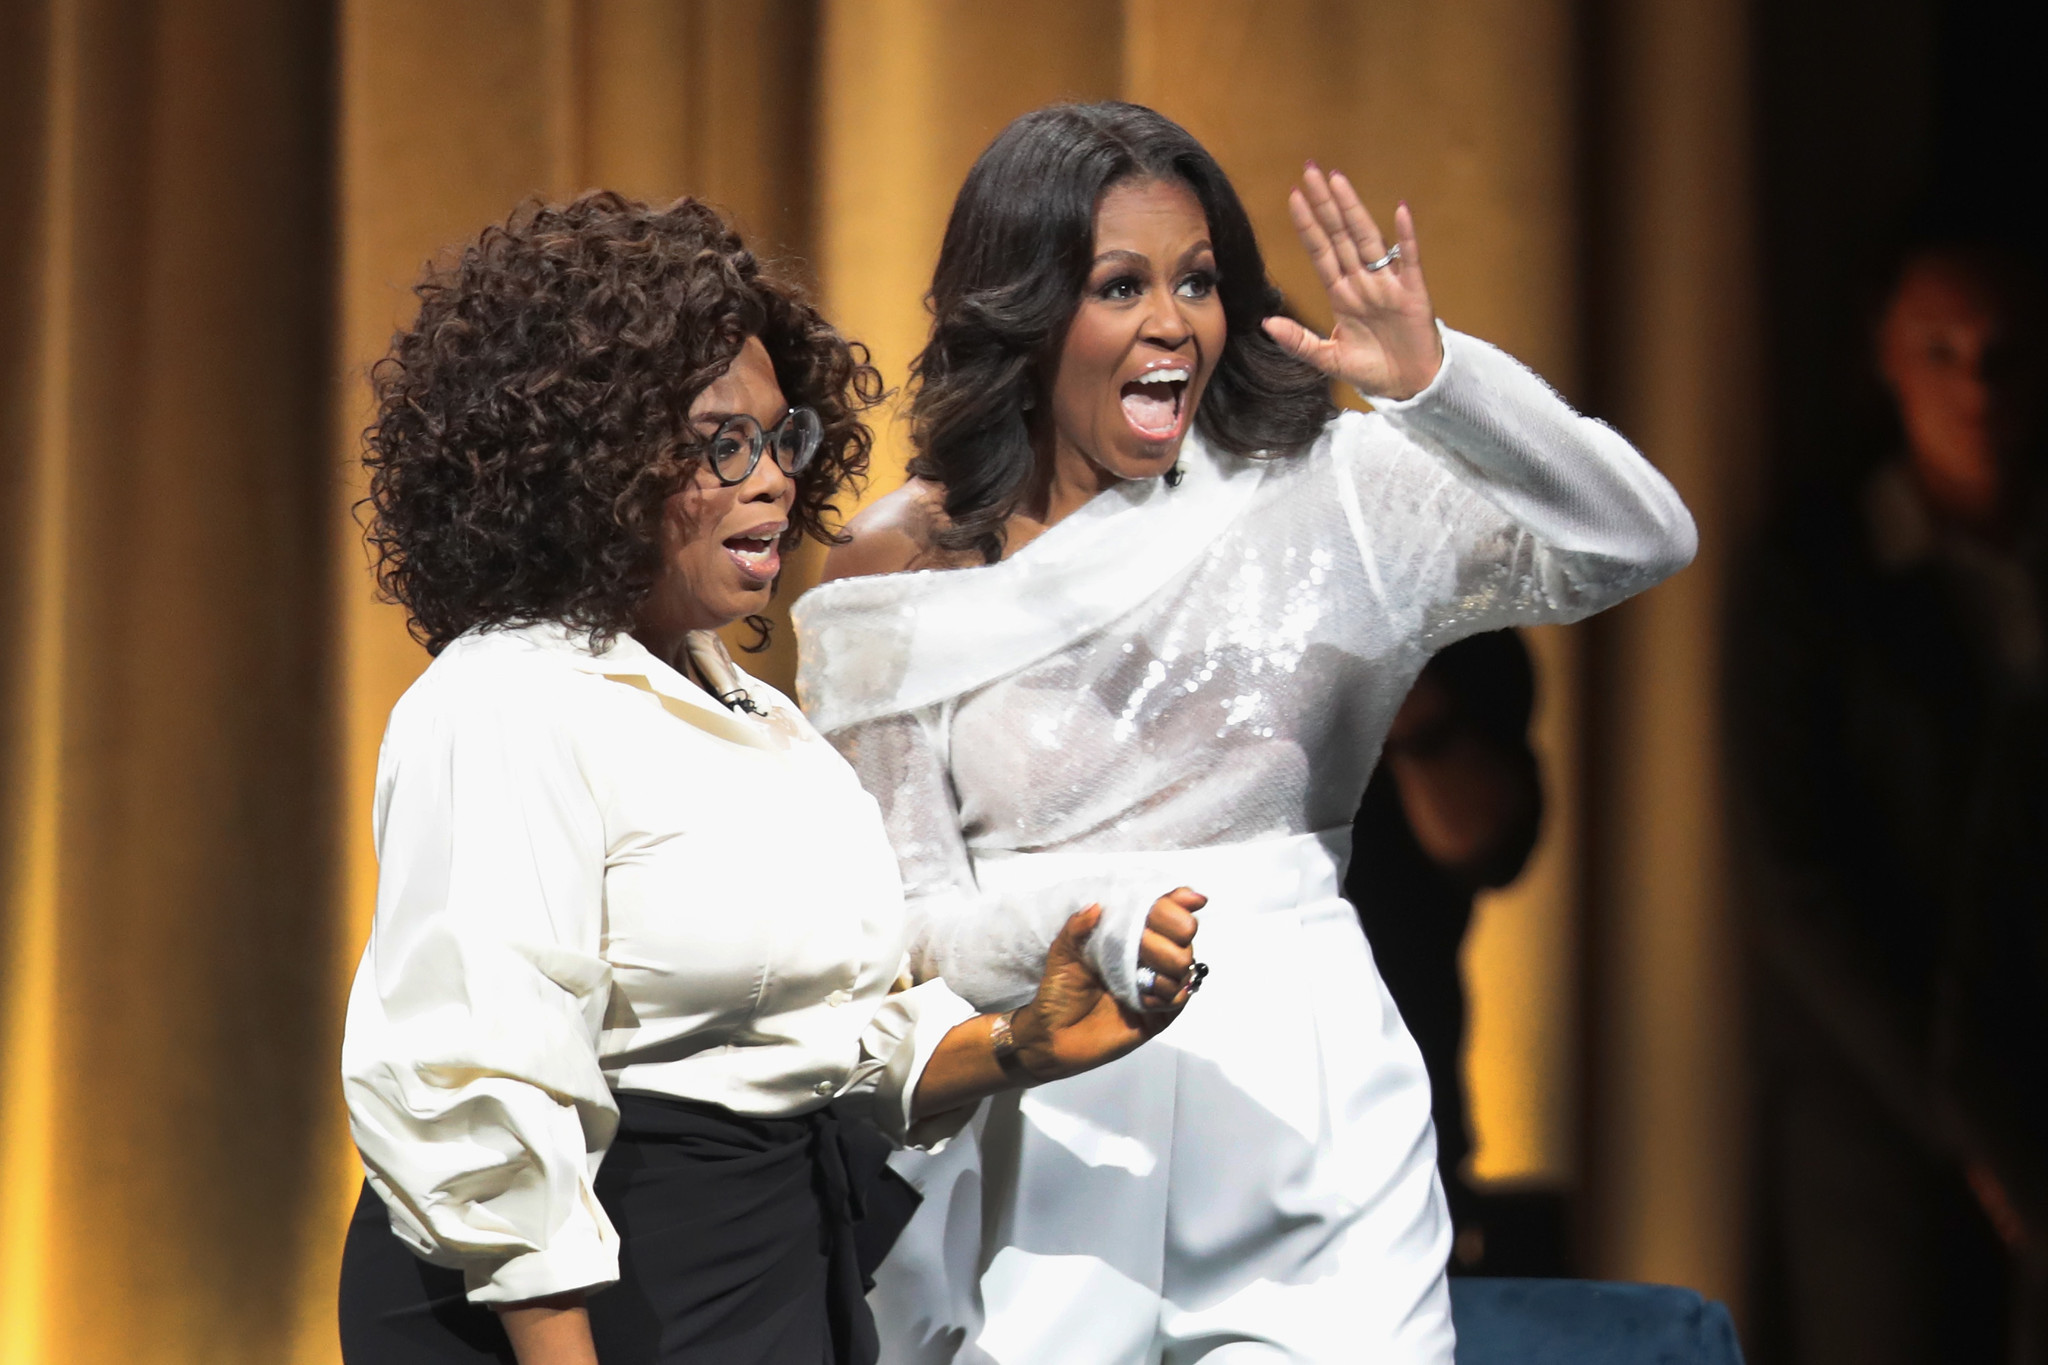 Michelle Obama steps out on book tour in boots Carrie